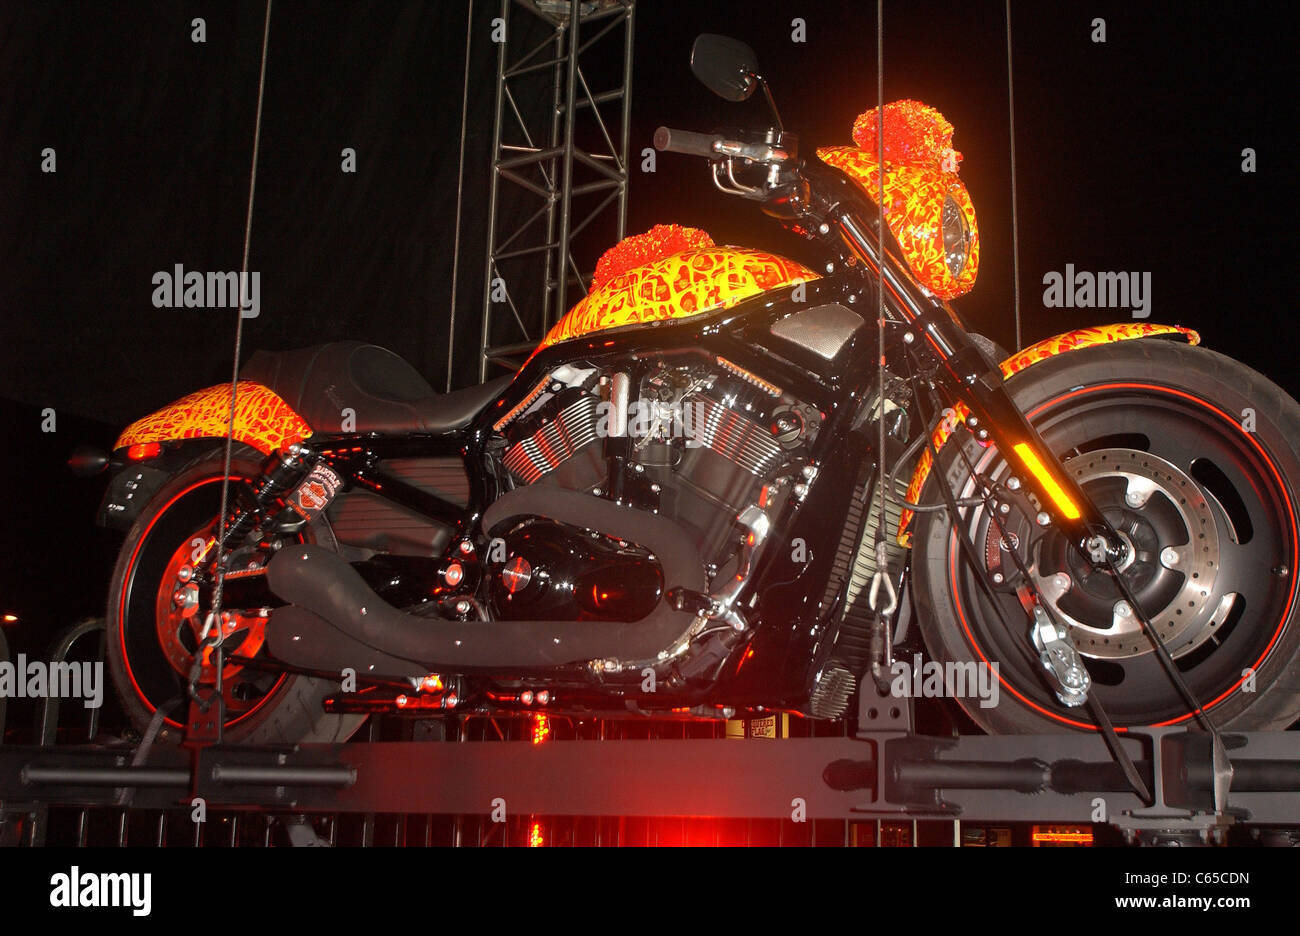 Cosmic Harley in attendance for Unveiling of Cosmic Starship Harley Davidson Motorcycle, Bartels' Harley Davidson - Stock Image